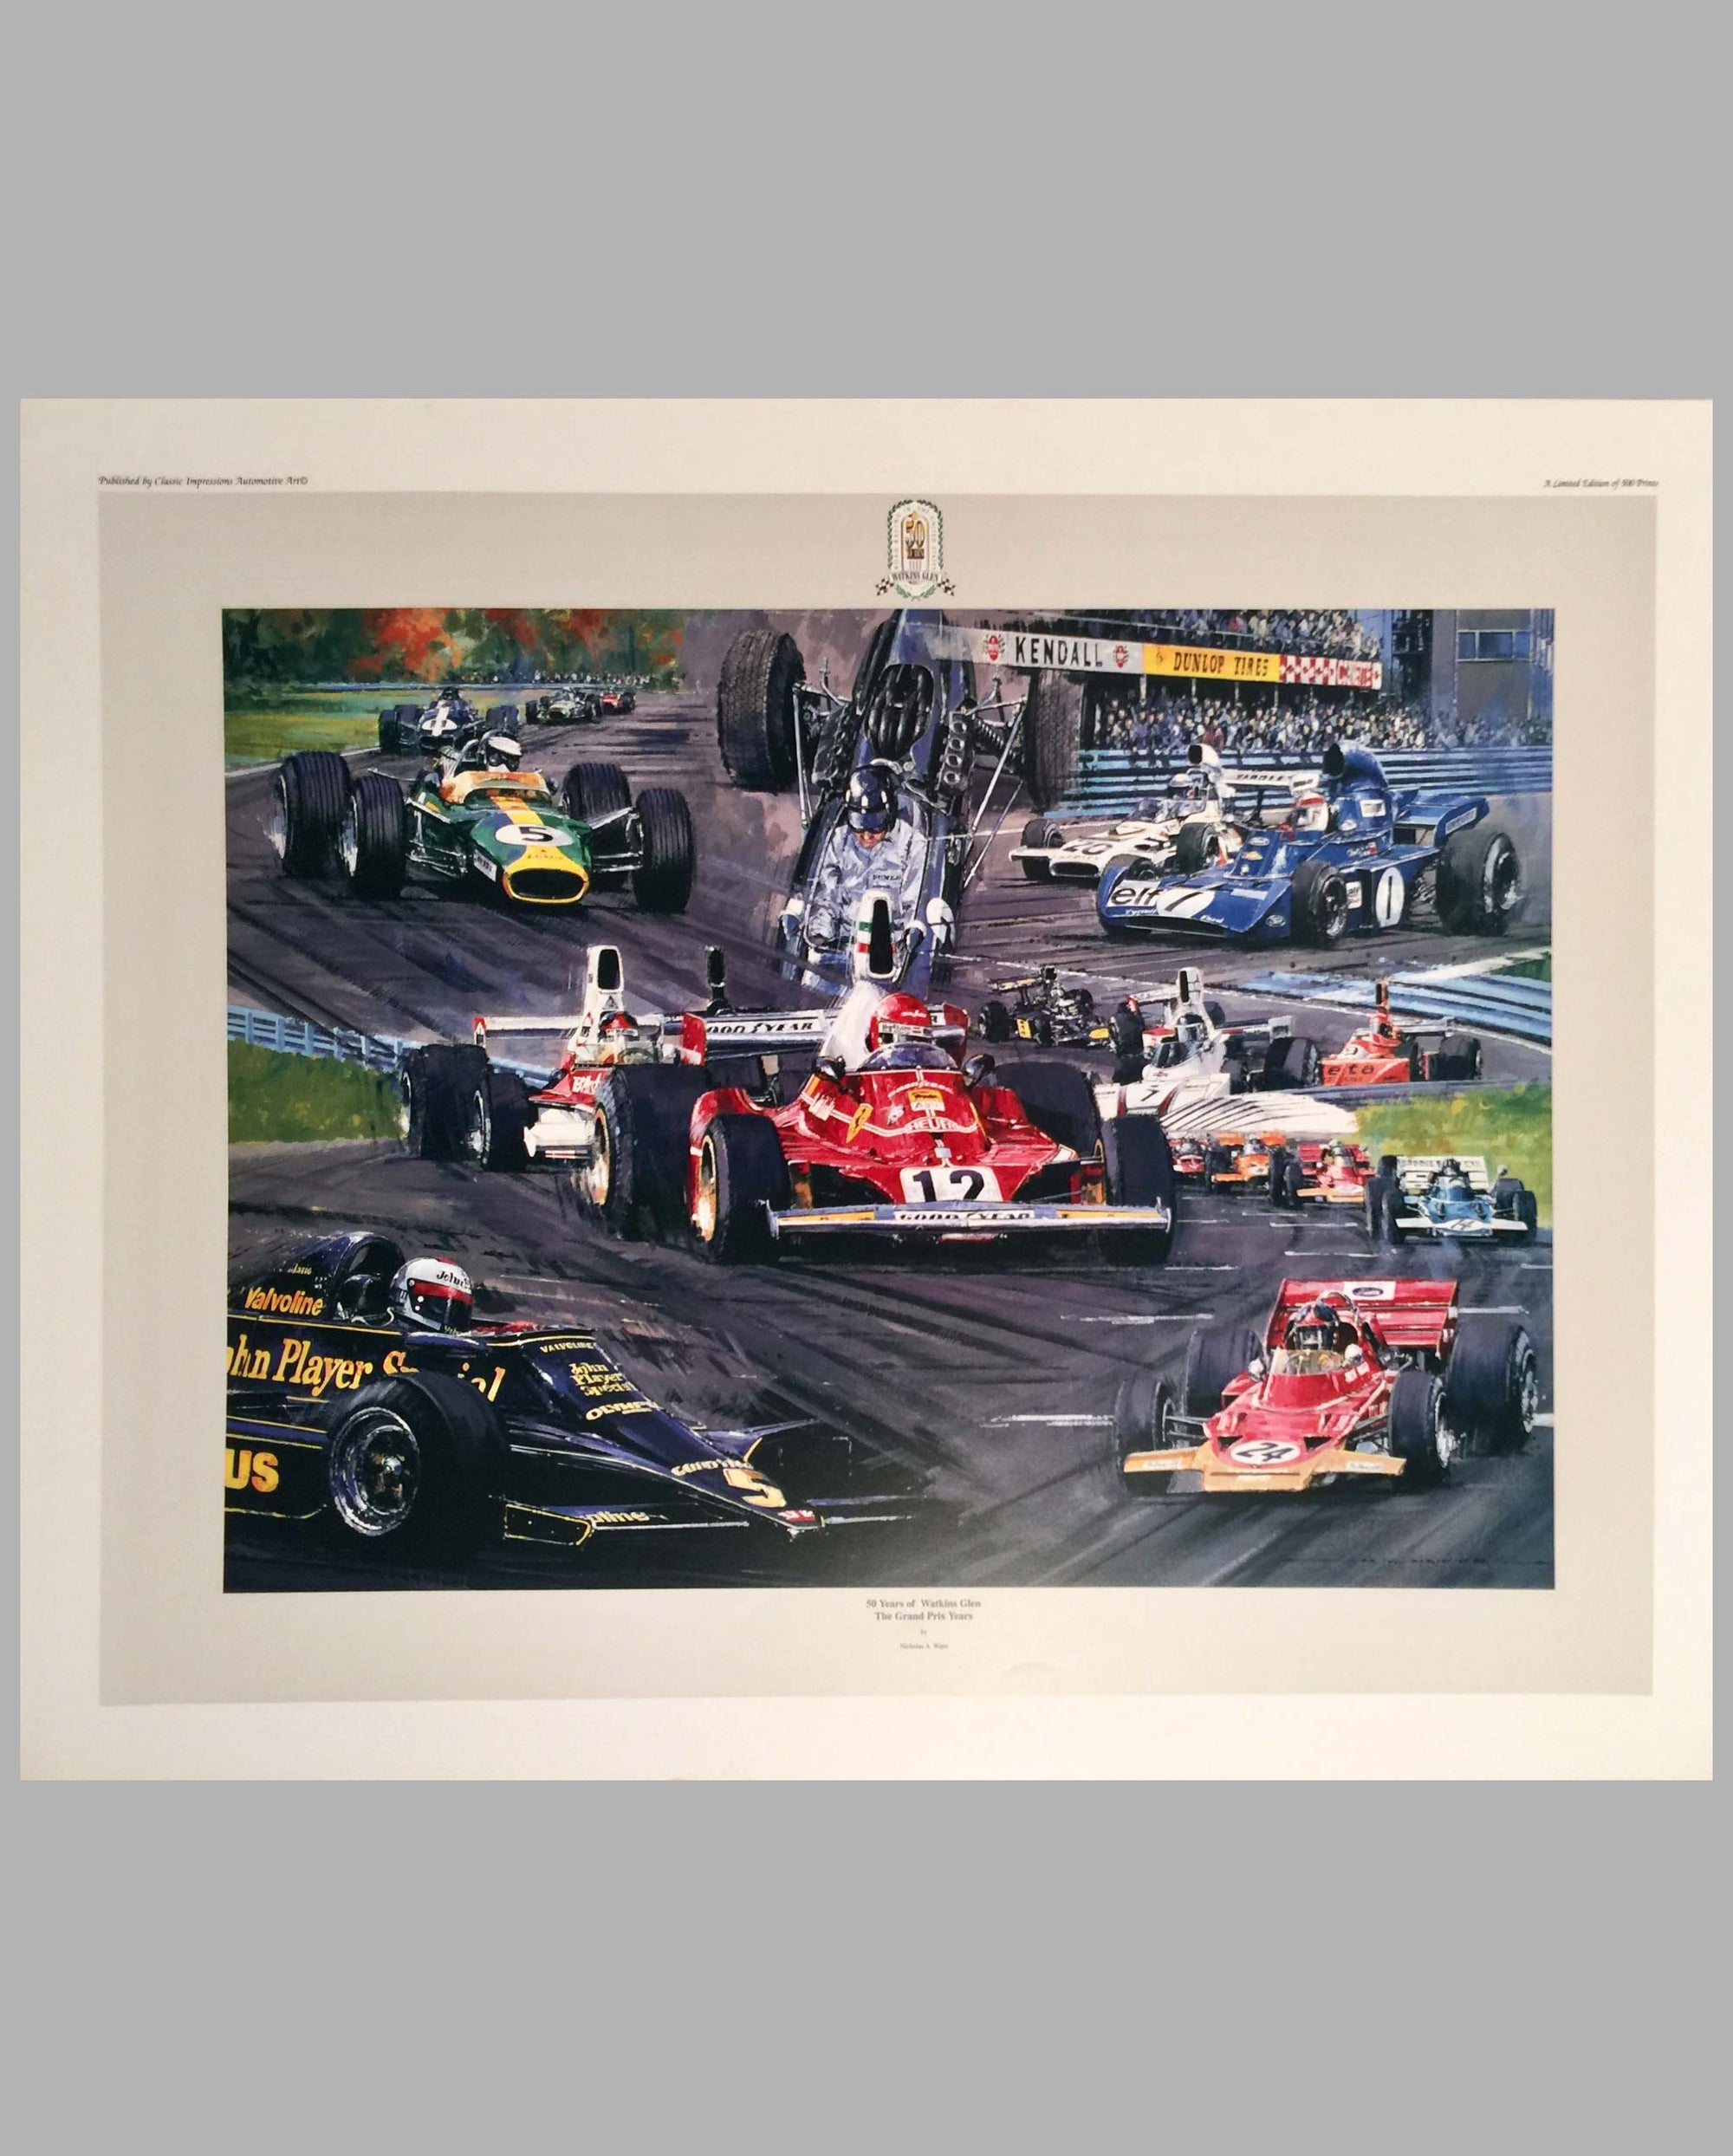 50 Years of Watkins Glen - The Grand Prix Years print by Nicholas Watts, 1998